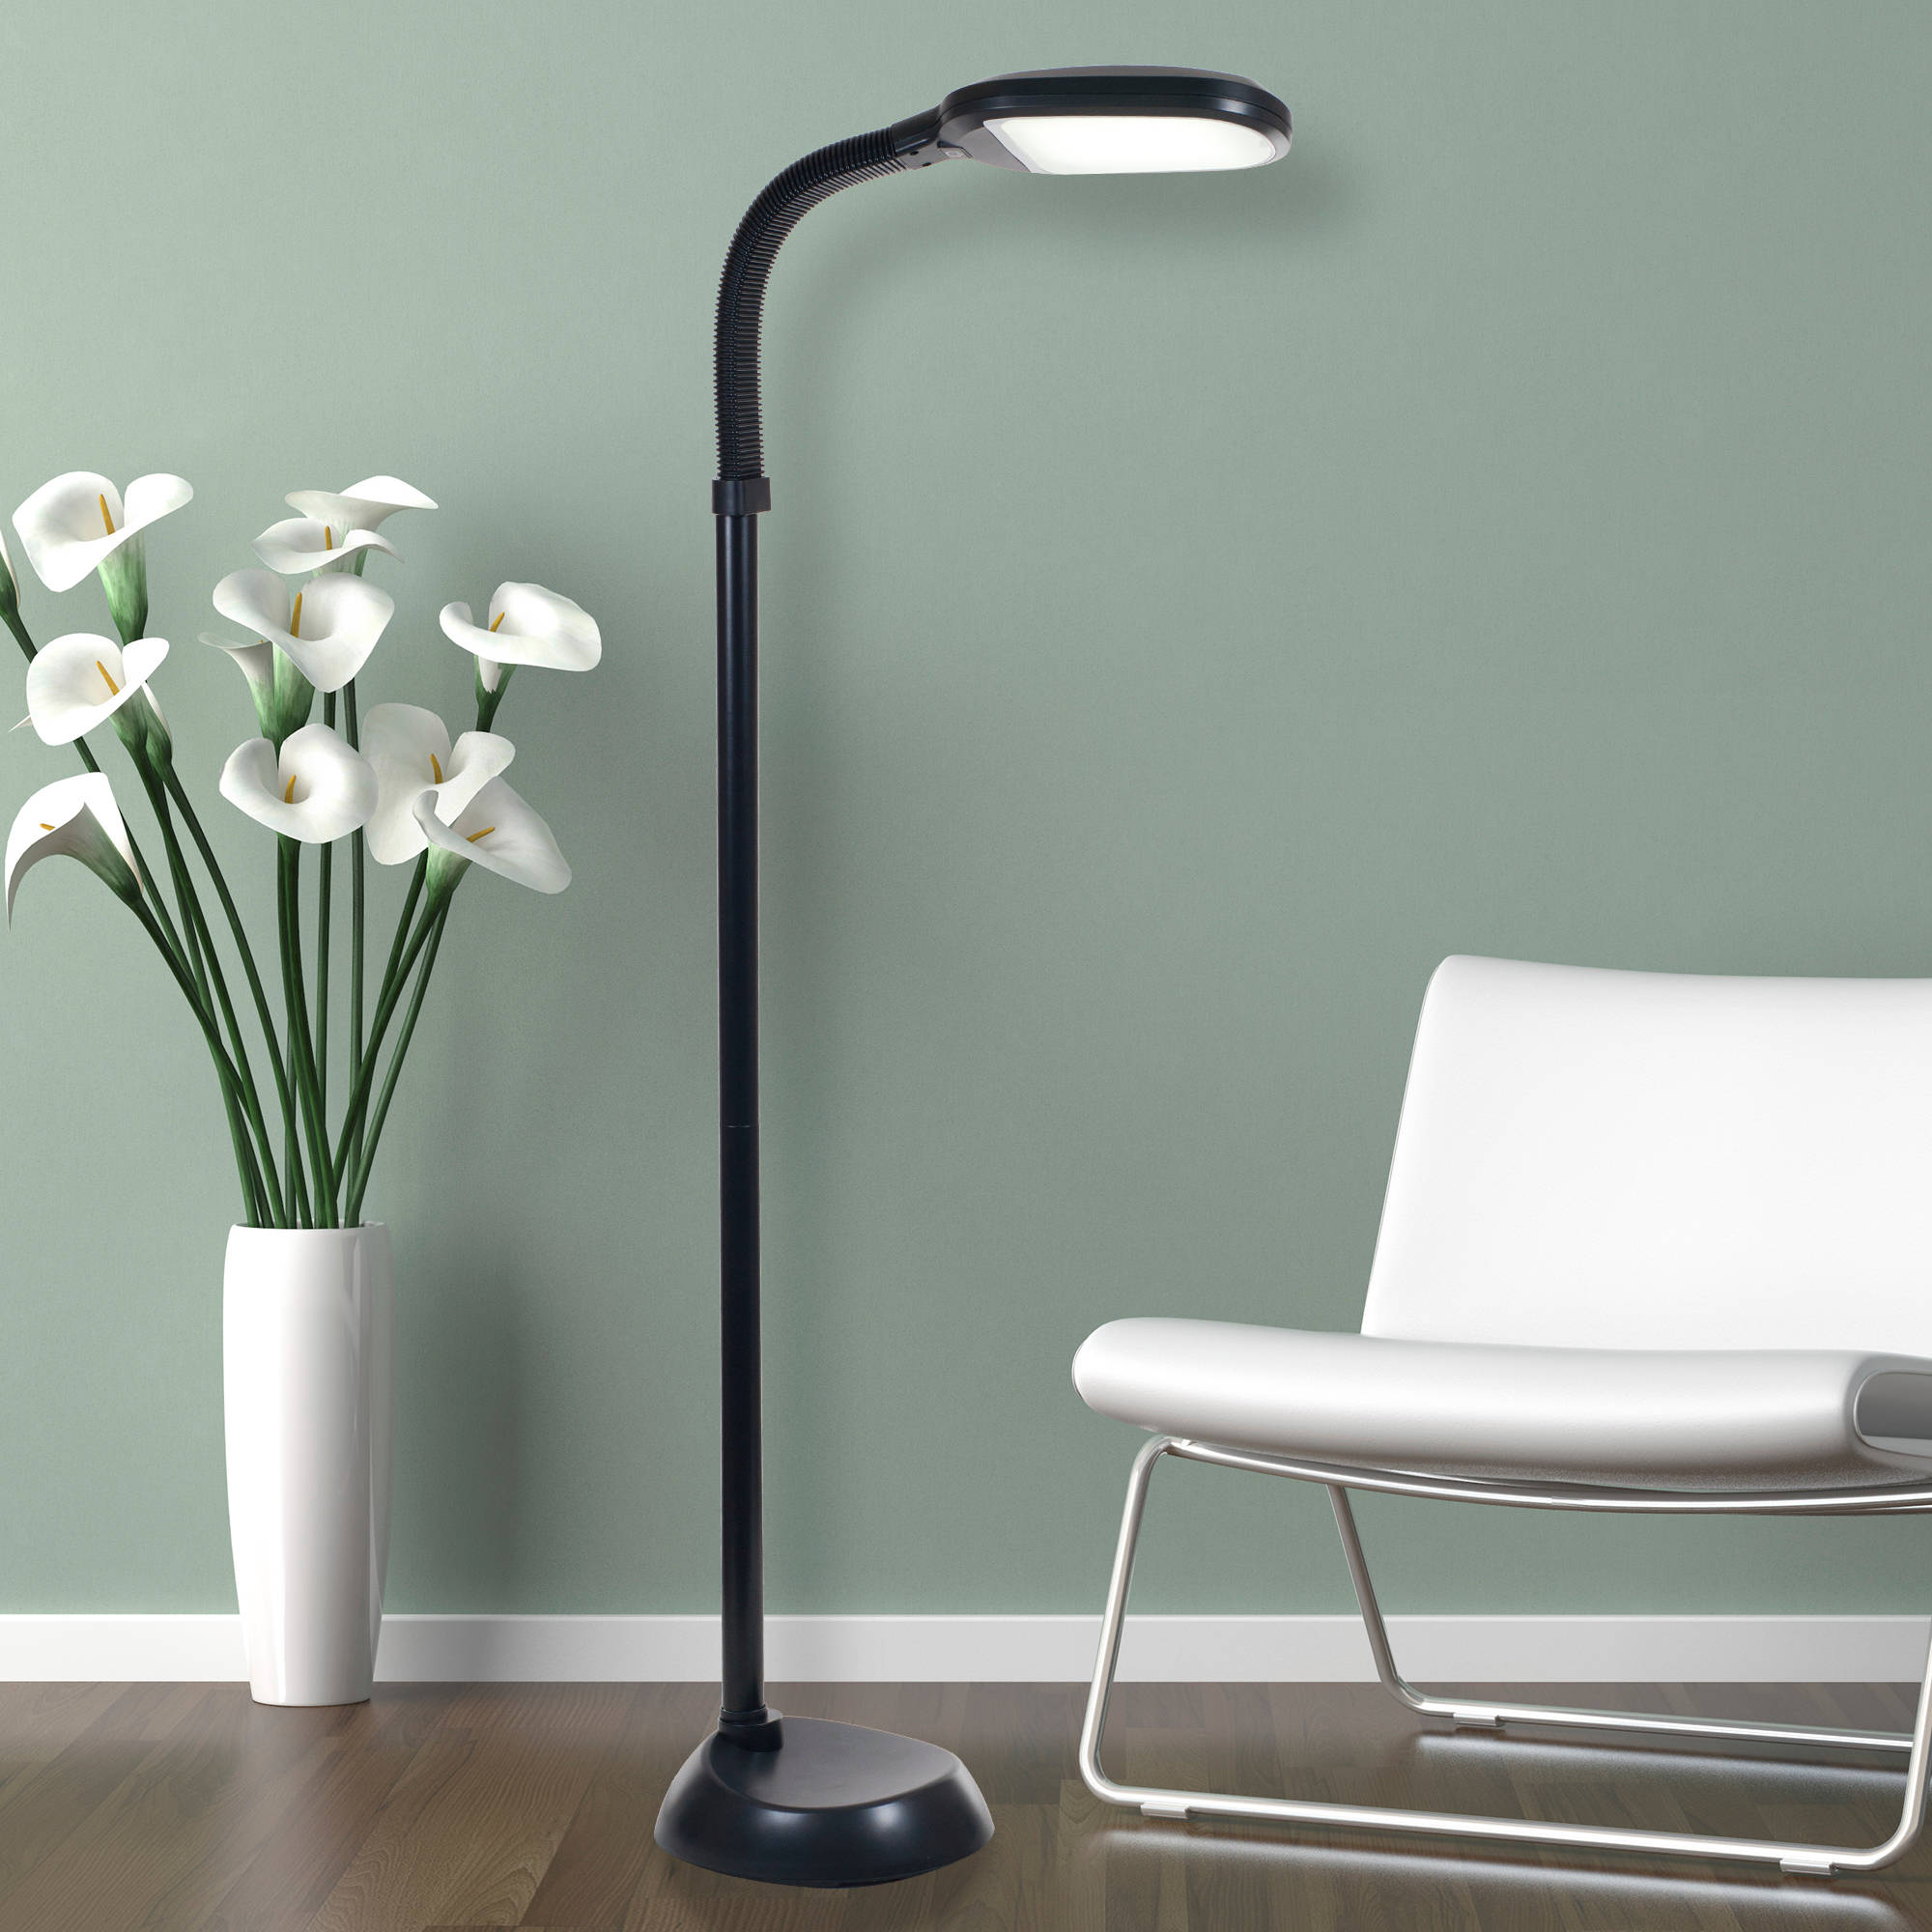 Lavish home led sunlight floor lamp with dimmer switch walmart mozeypictures Gallery